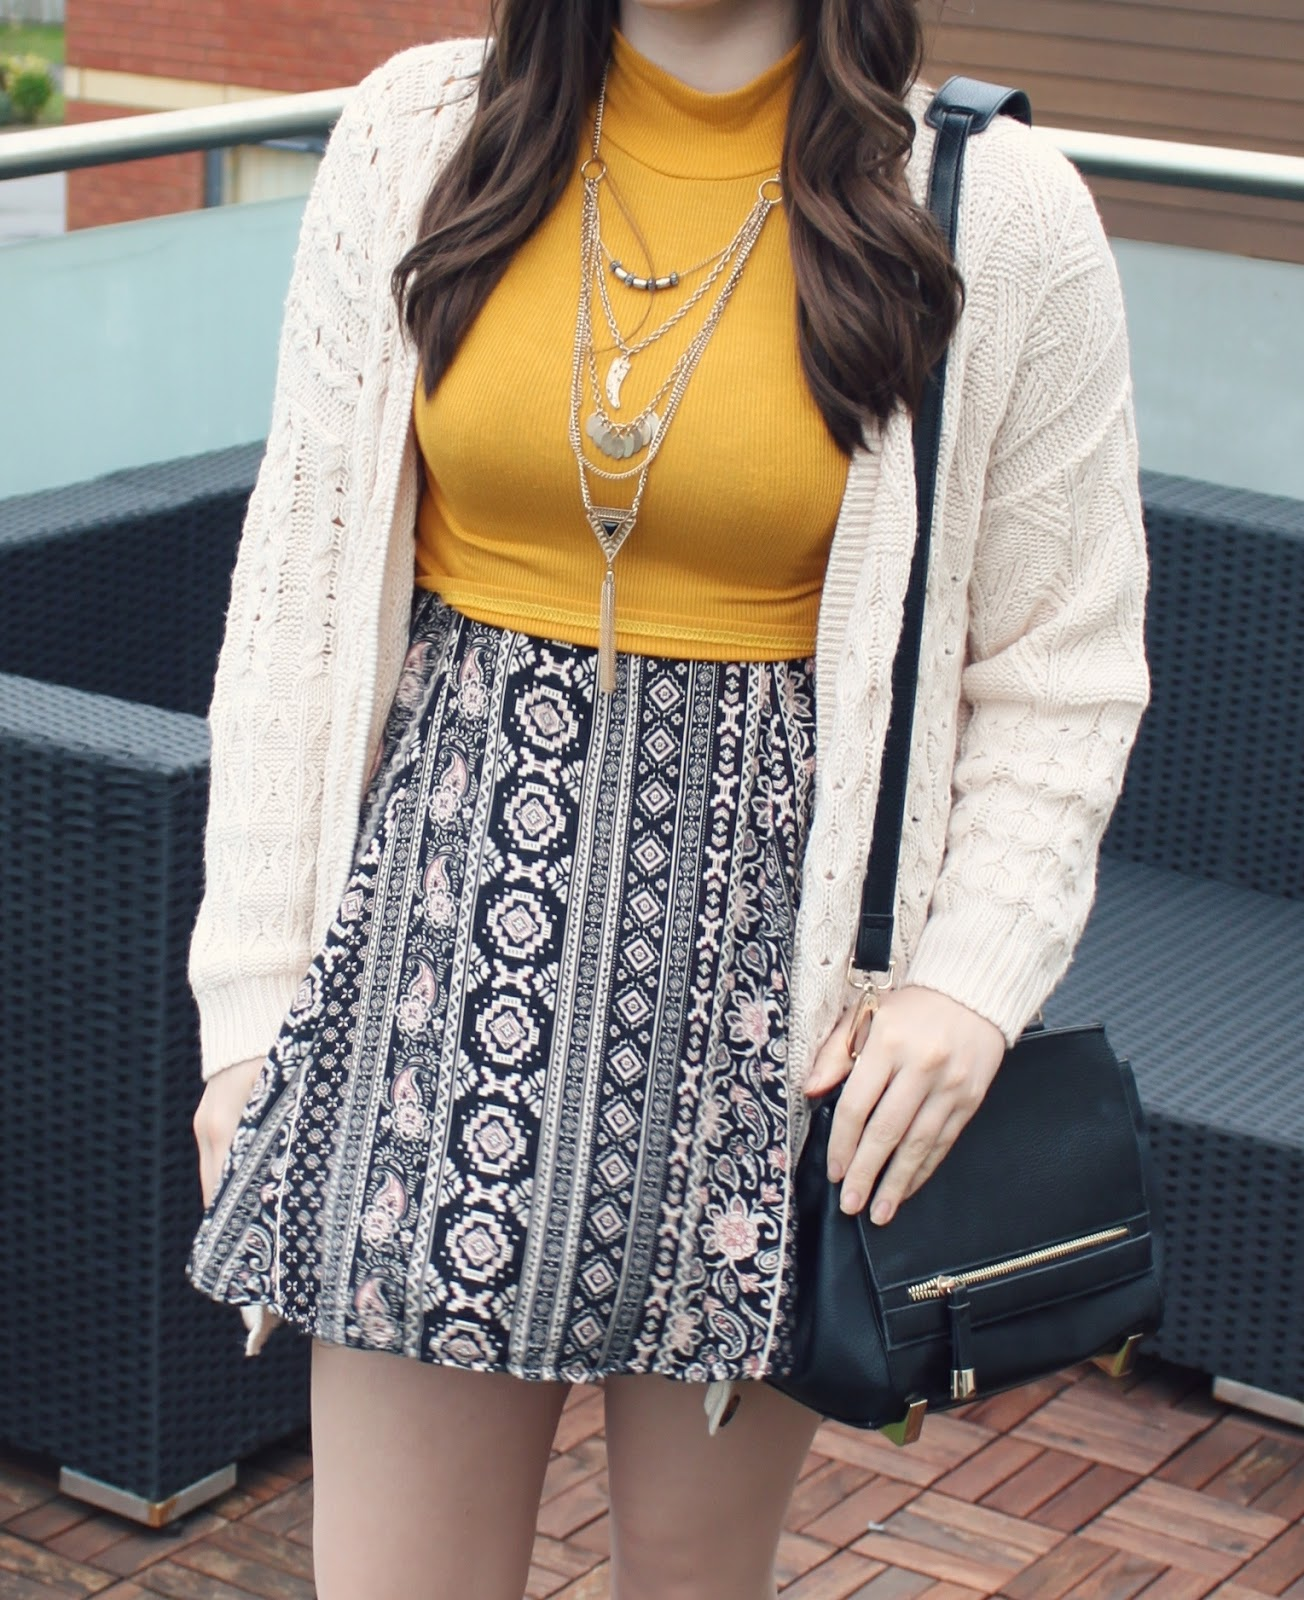 bohemian-style-aztec-dress-and-yellow-crop-top